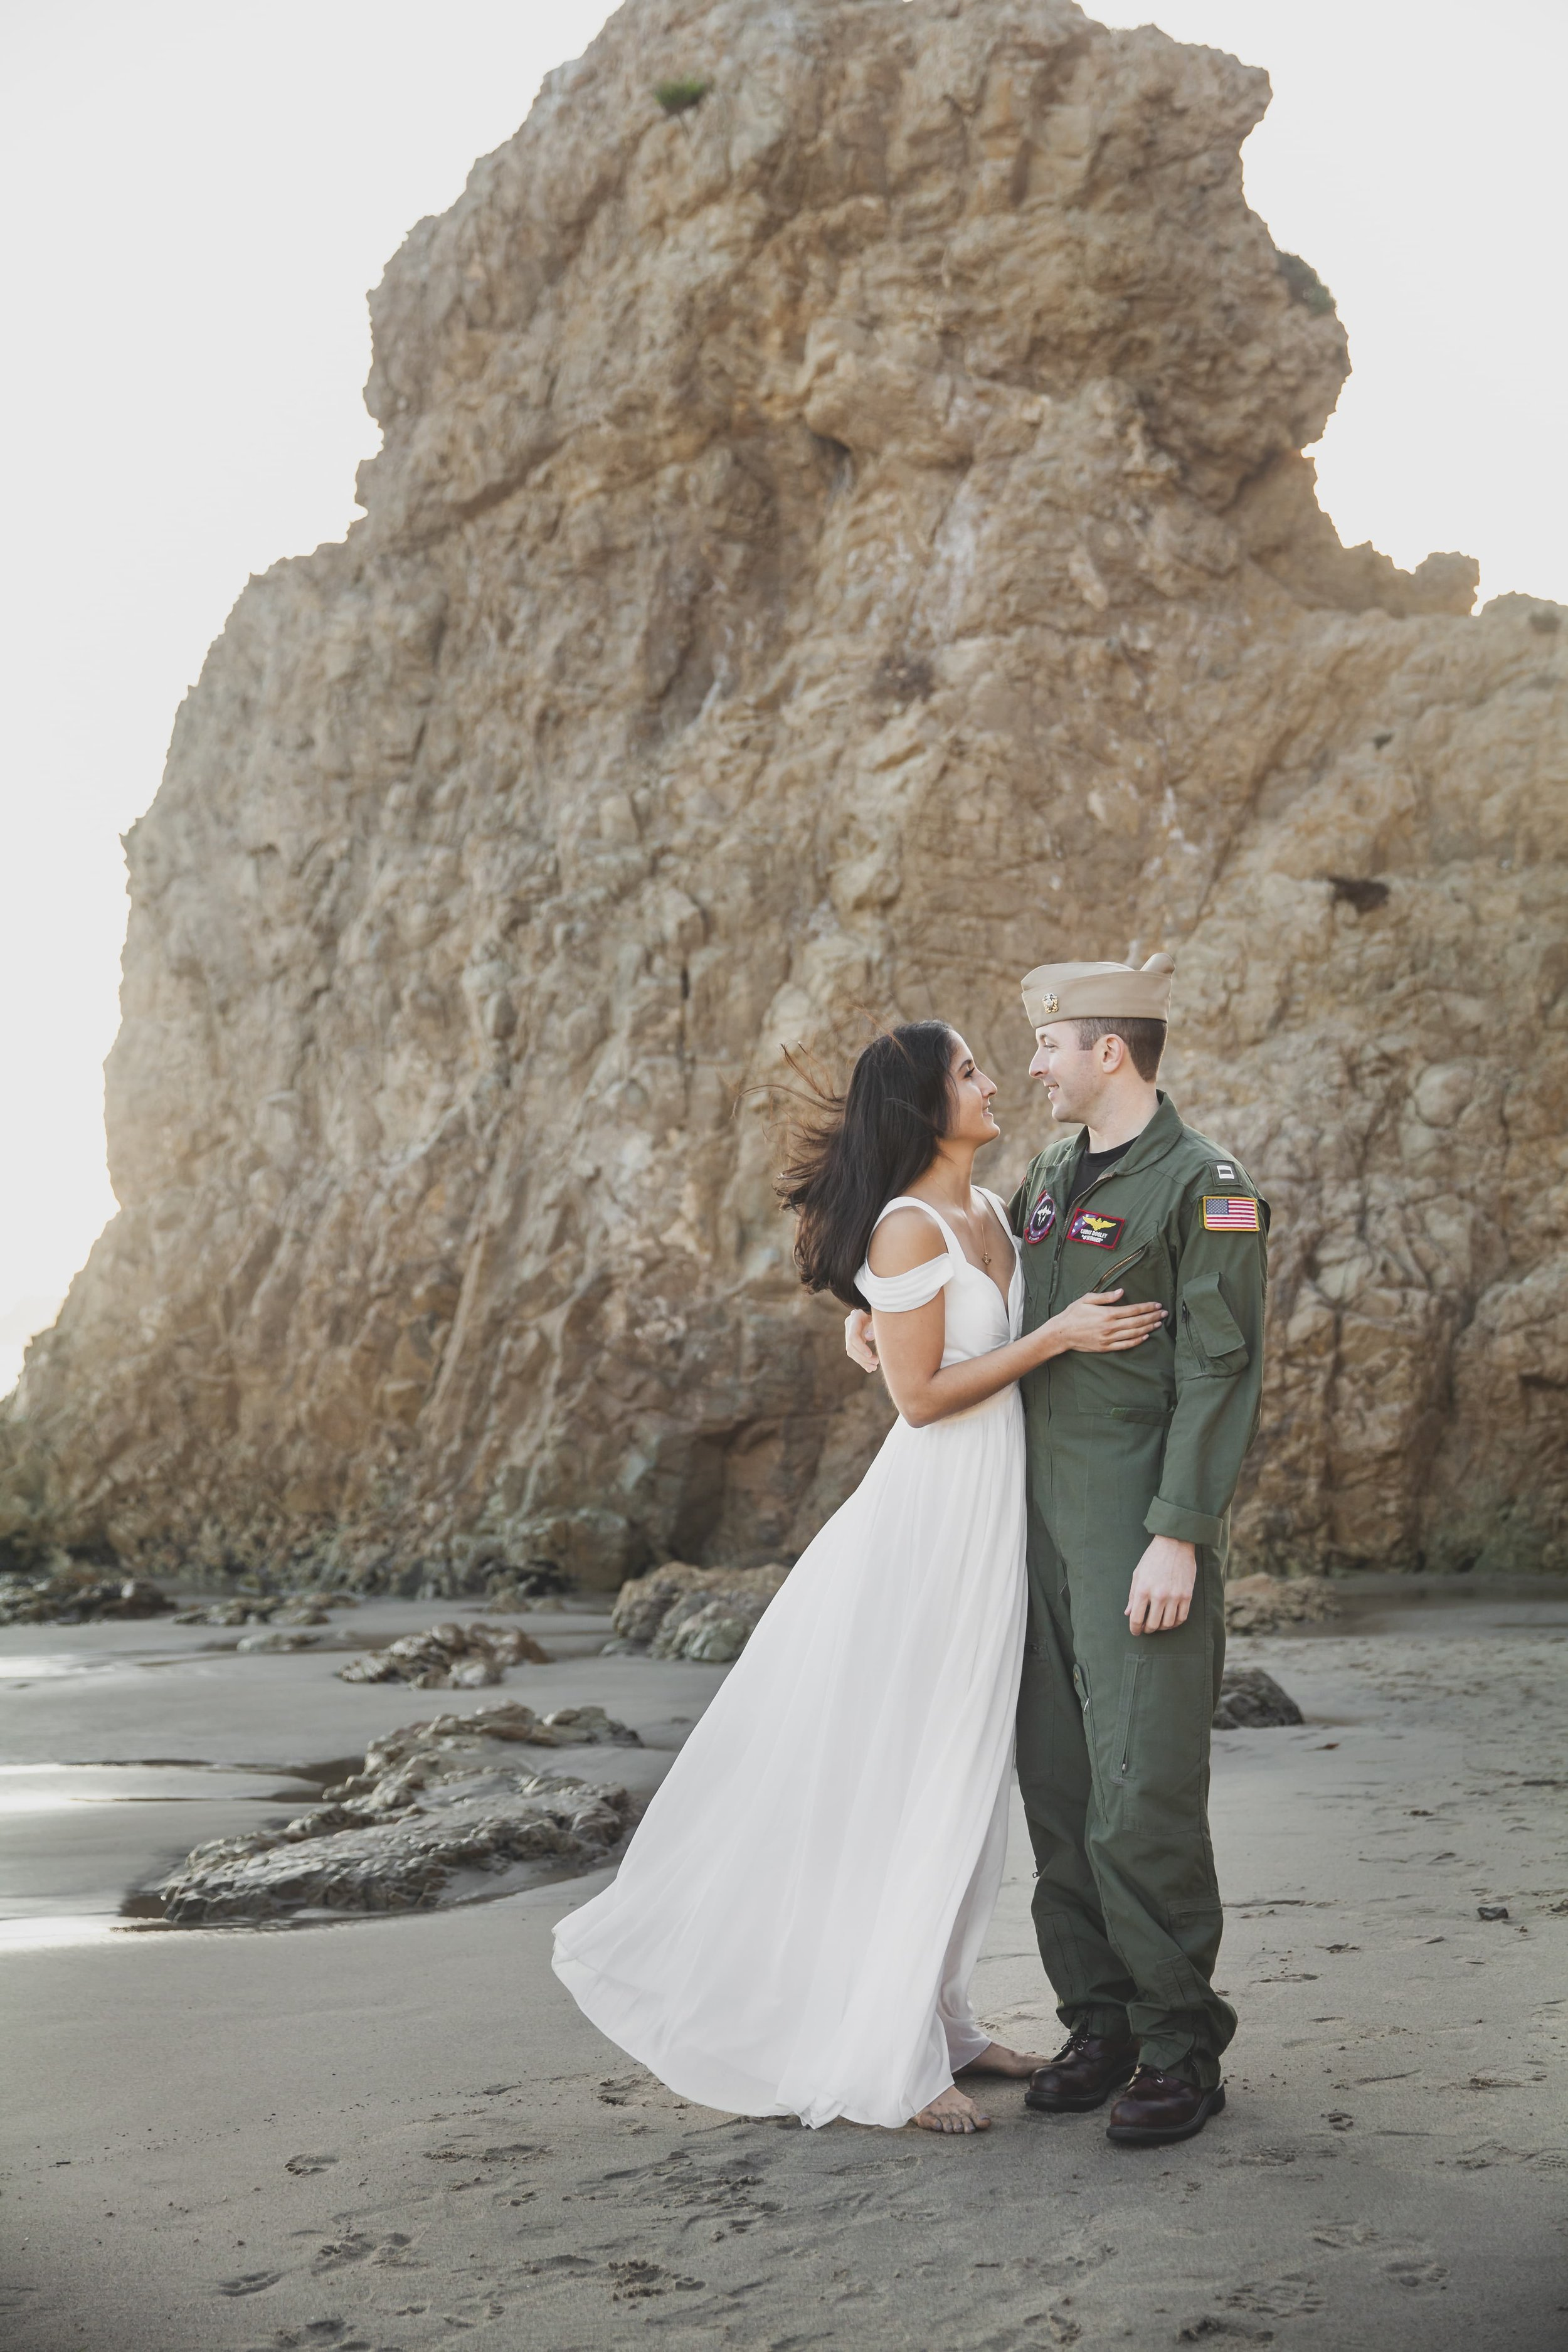 California Engagement Photography - Woman staring lovingly into her partners eyes.